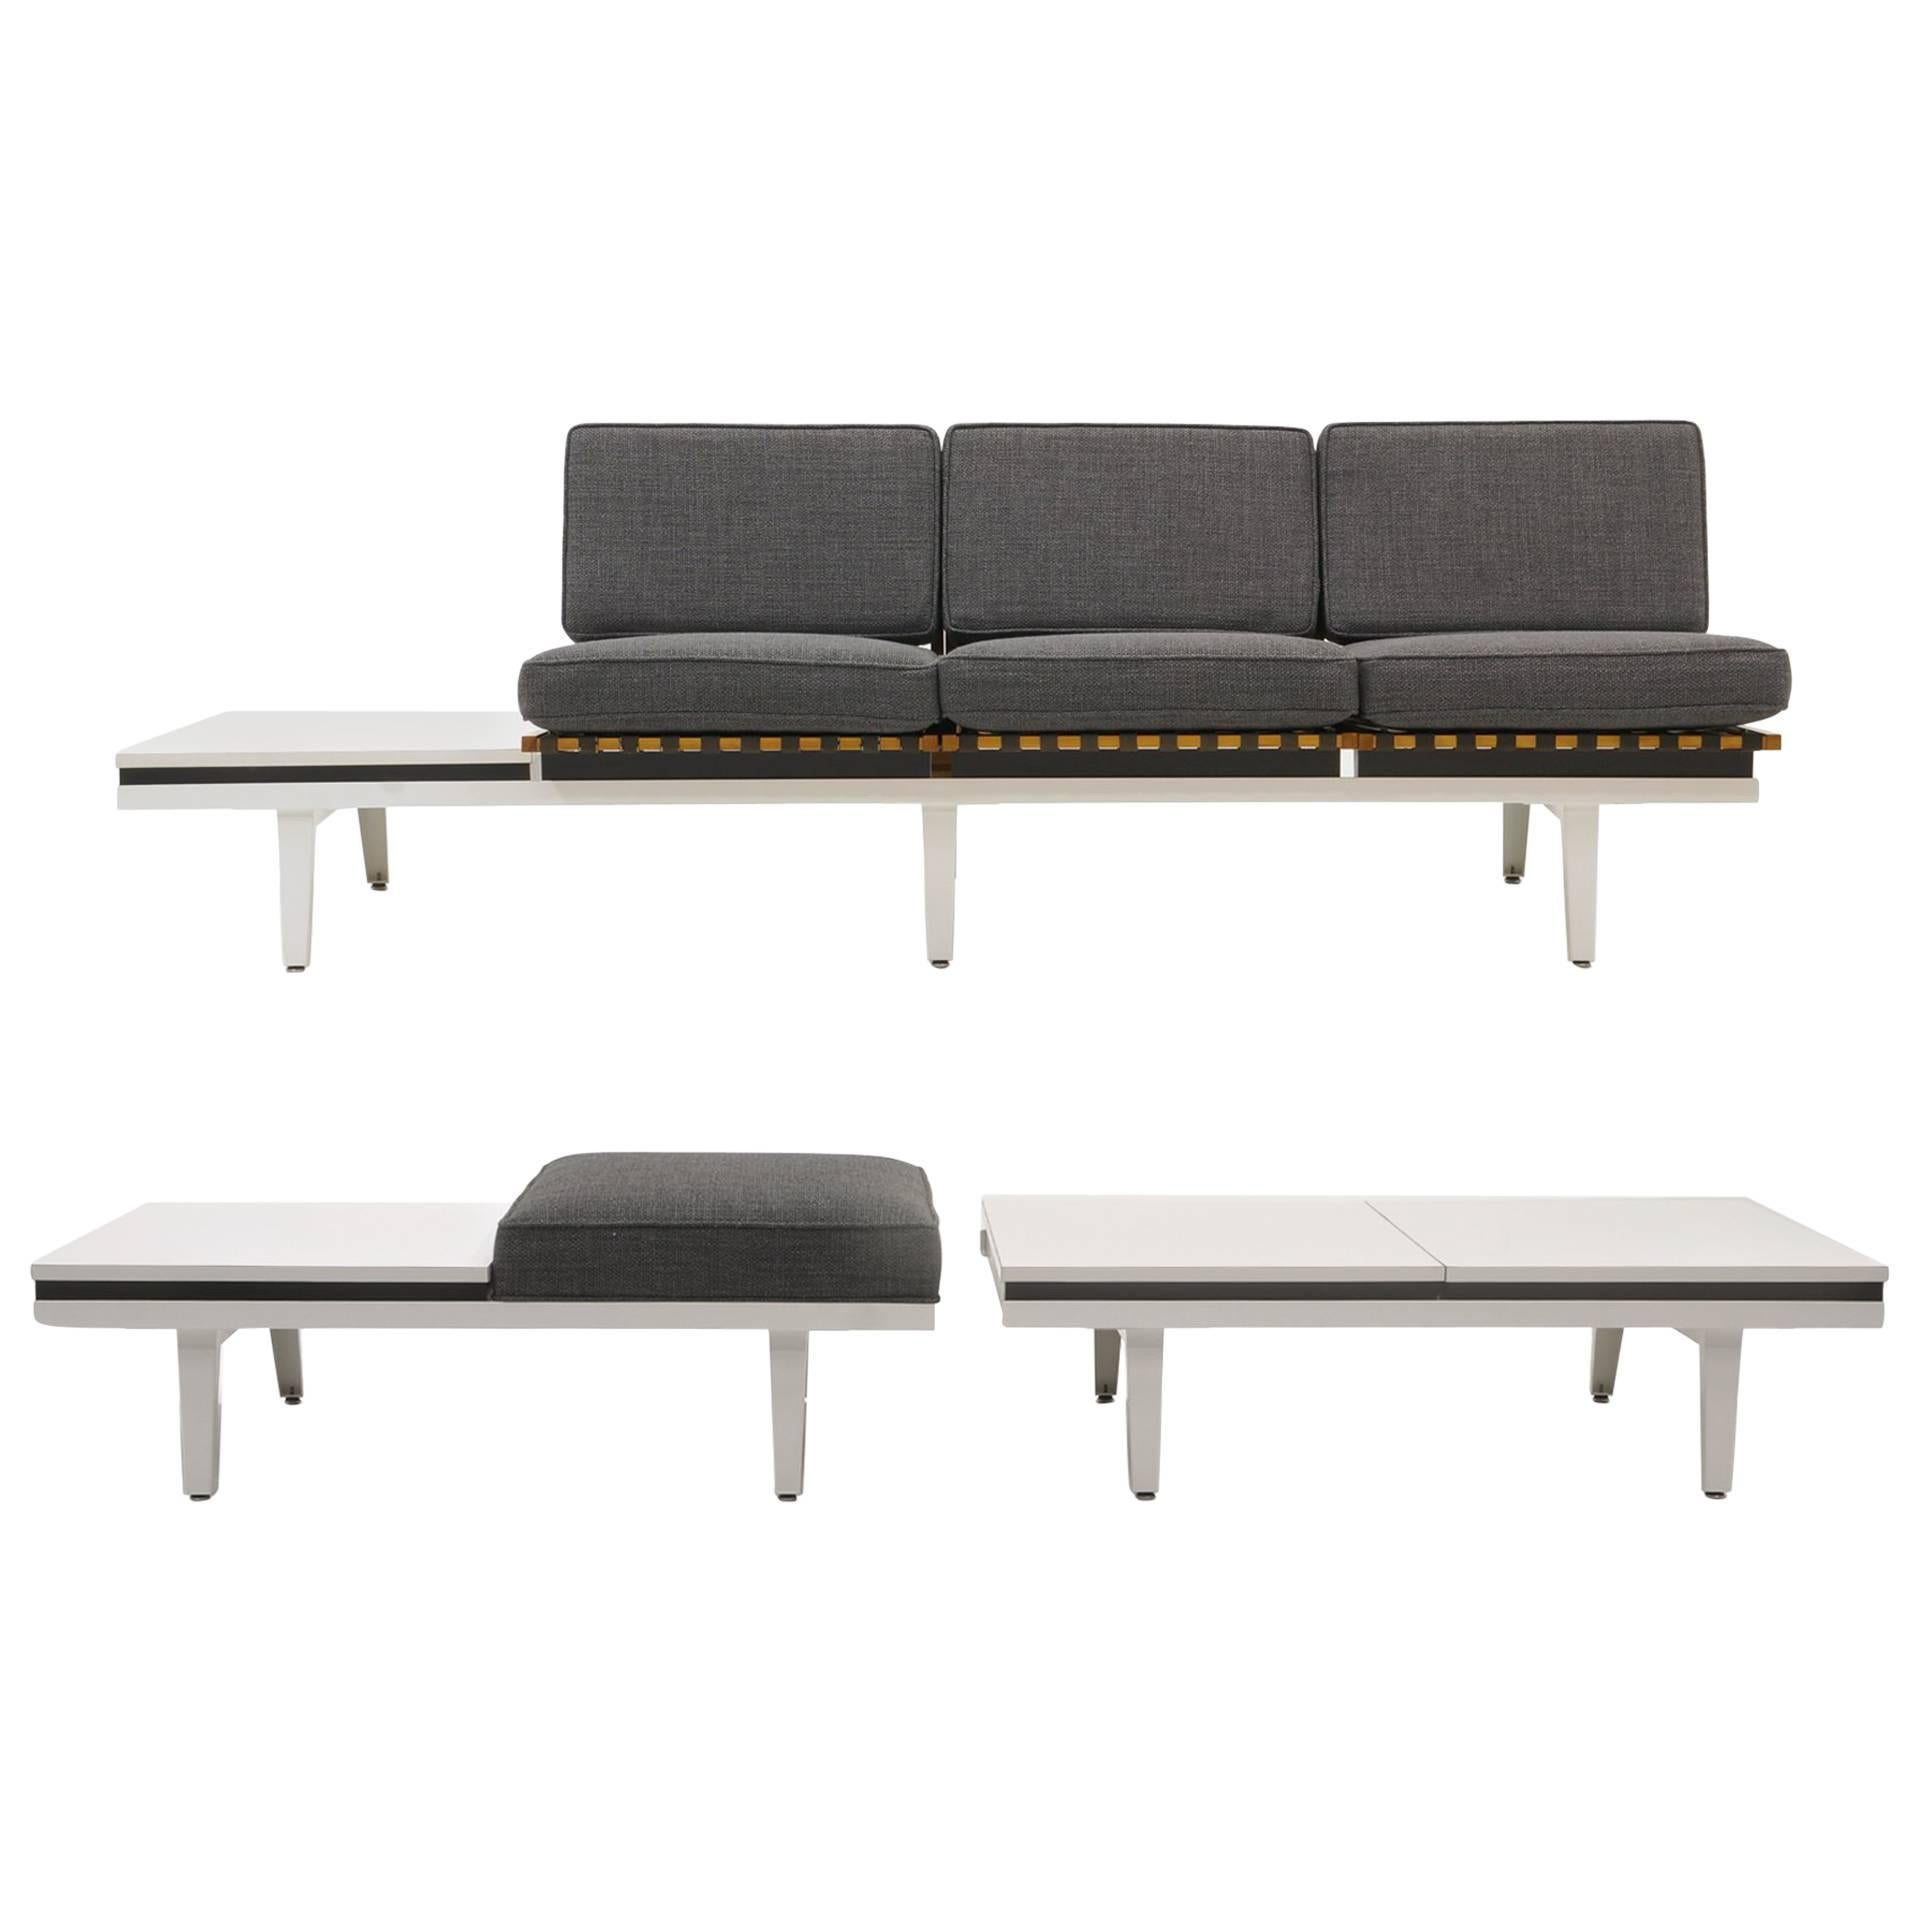 steel frame sofa second hand for sale bench and coffee table by george nelson herman miller